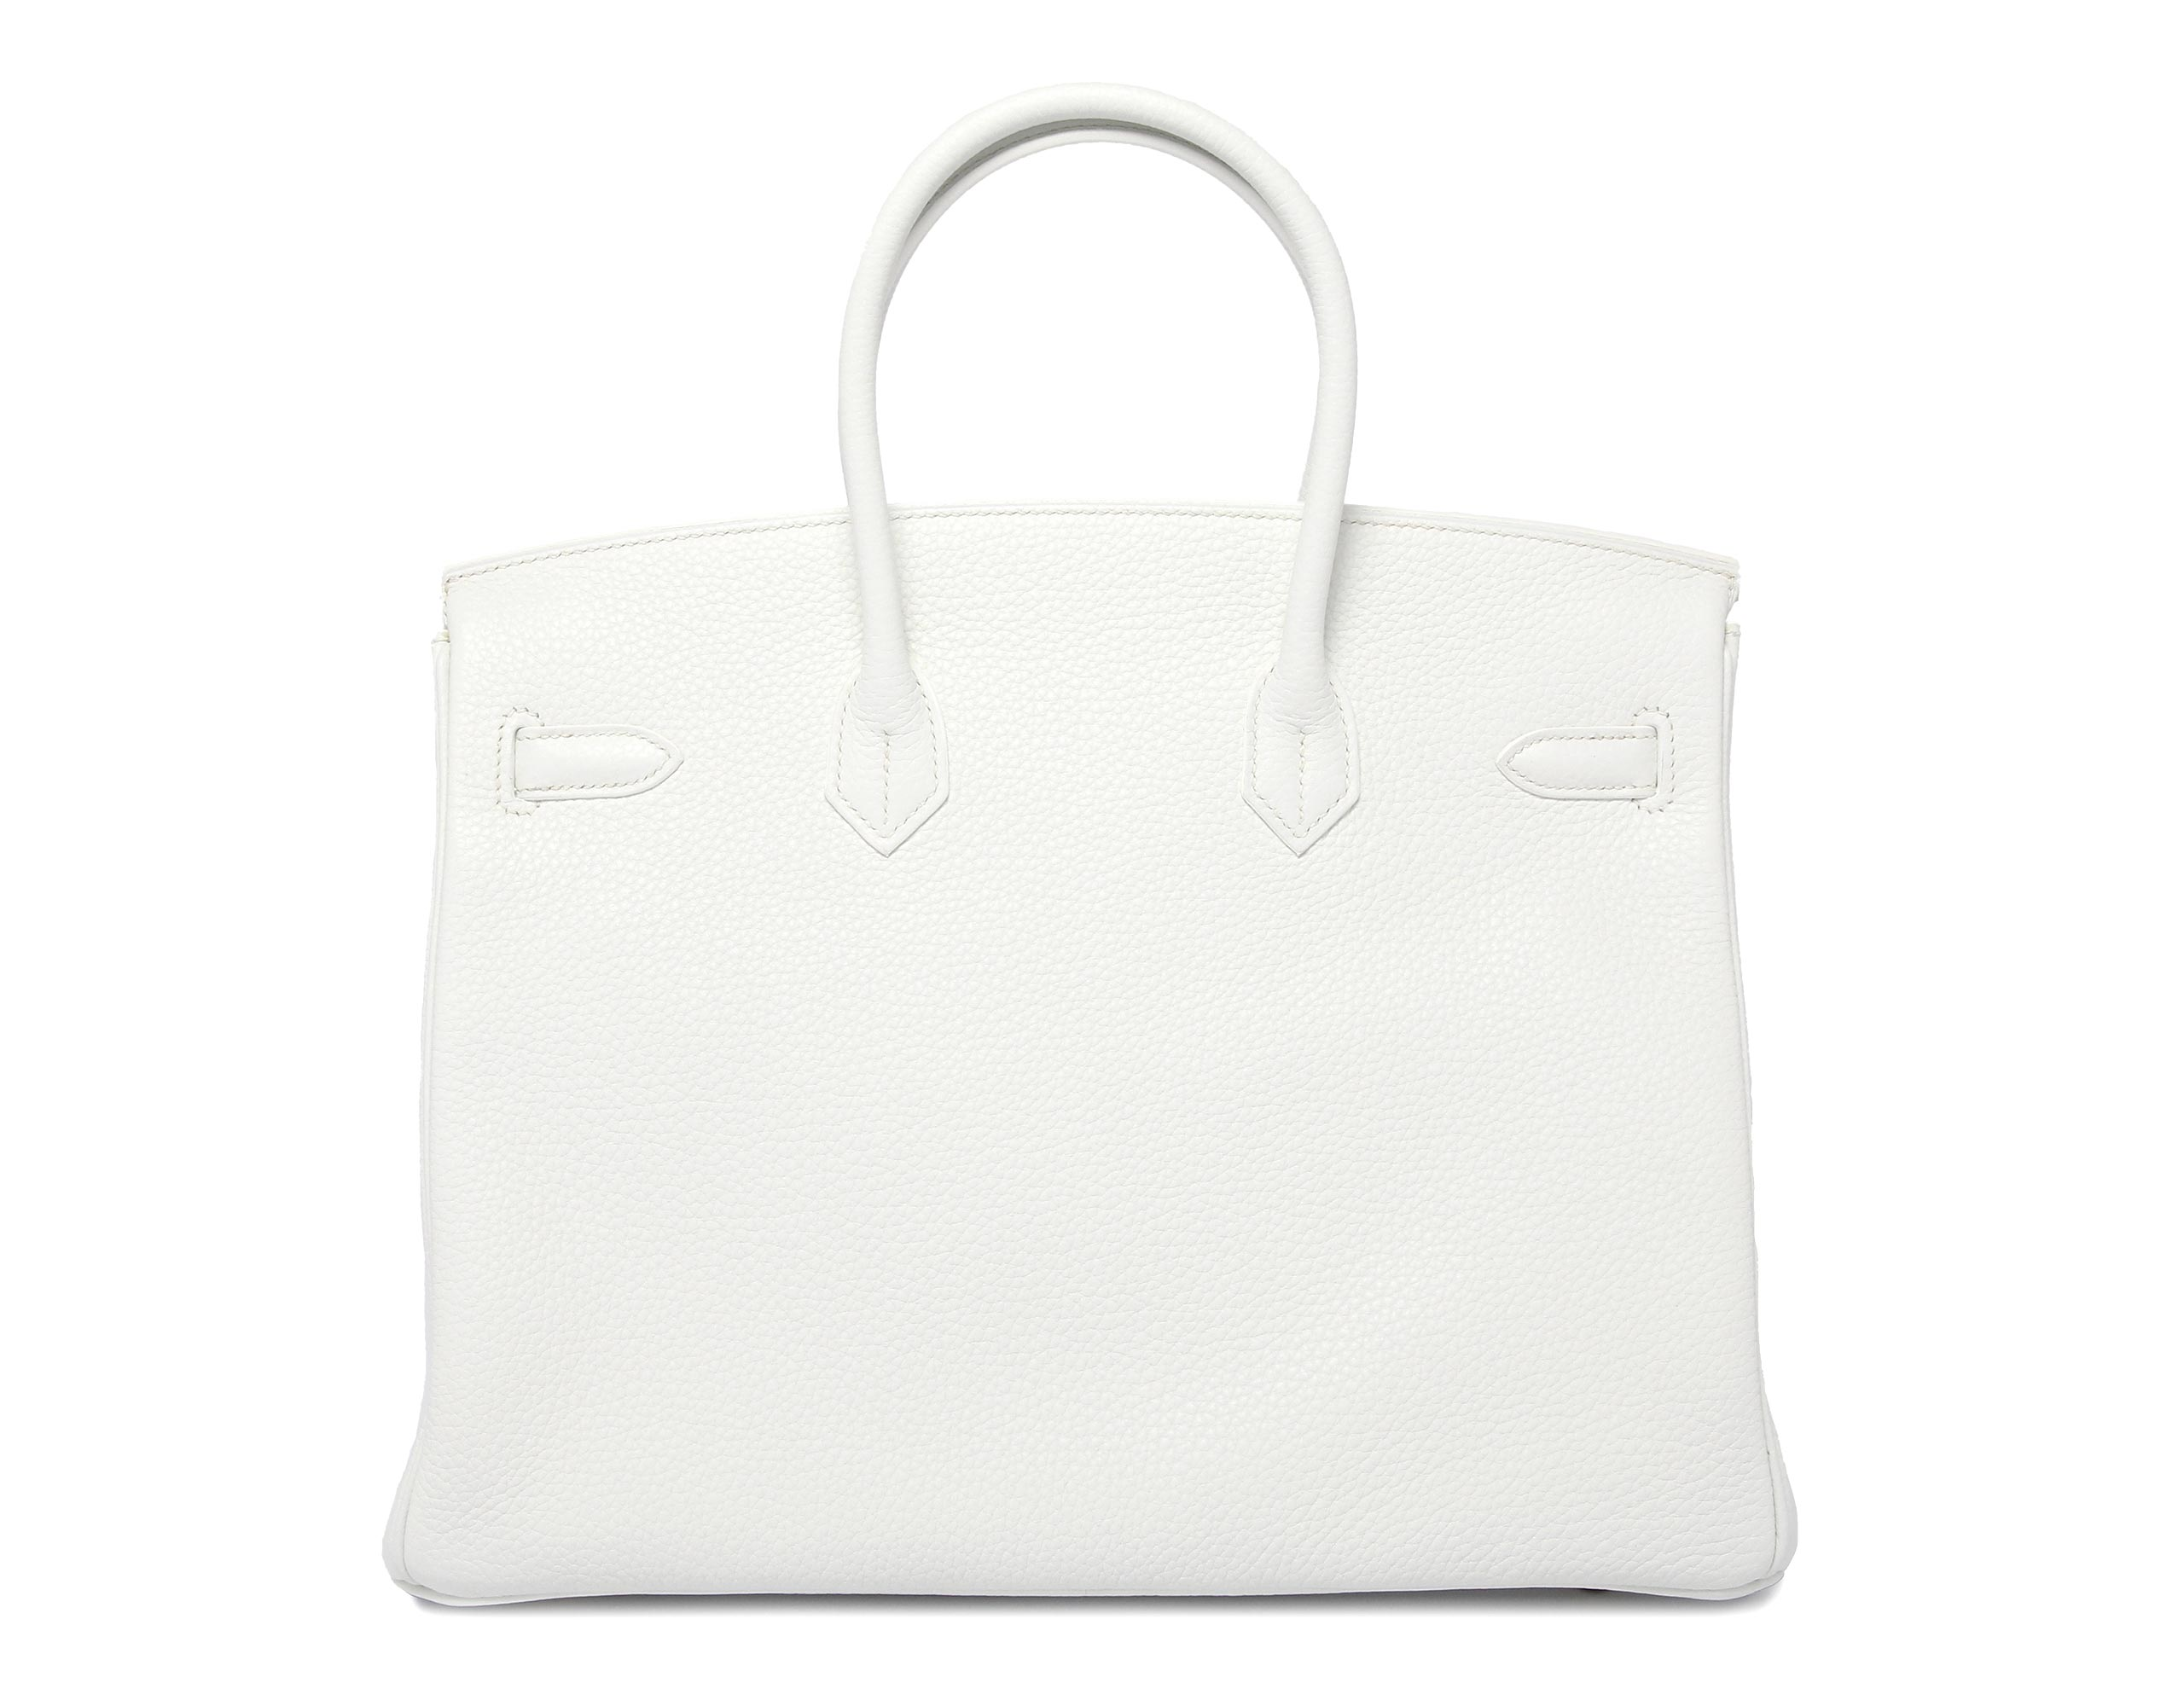 Hermes Birkin White Clemence with Gold